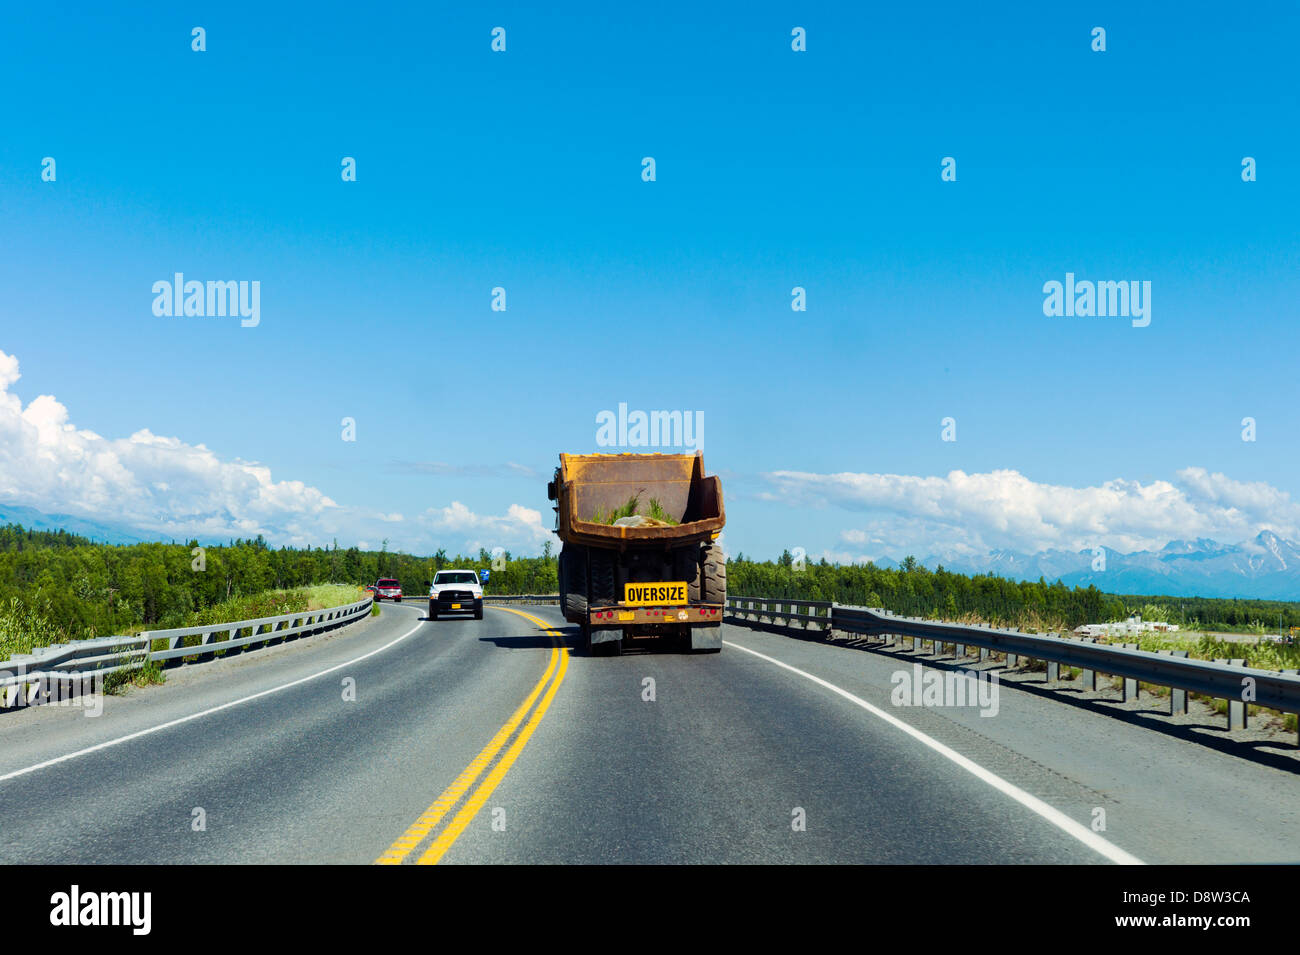 Construction vehicle, oversize, wide load, traveling south on Highway 3, north of Anchorage, Alaska, USA - Stock Image